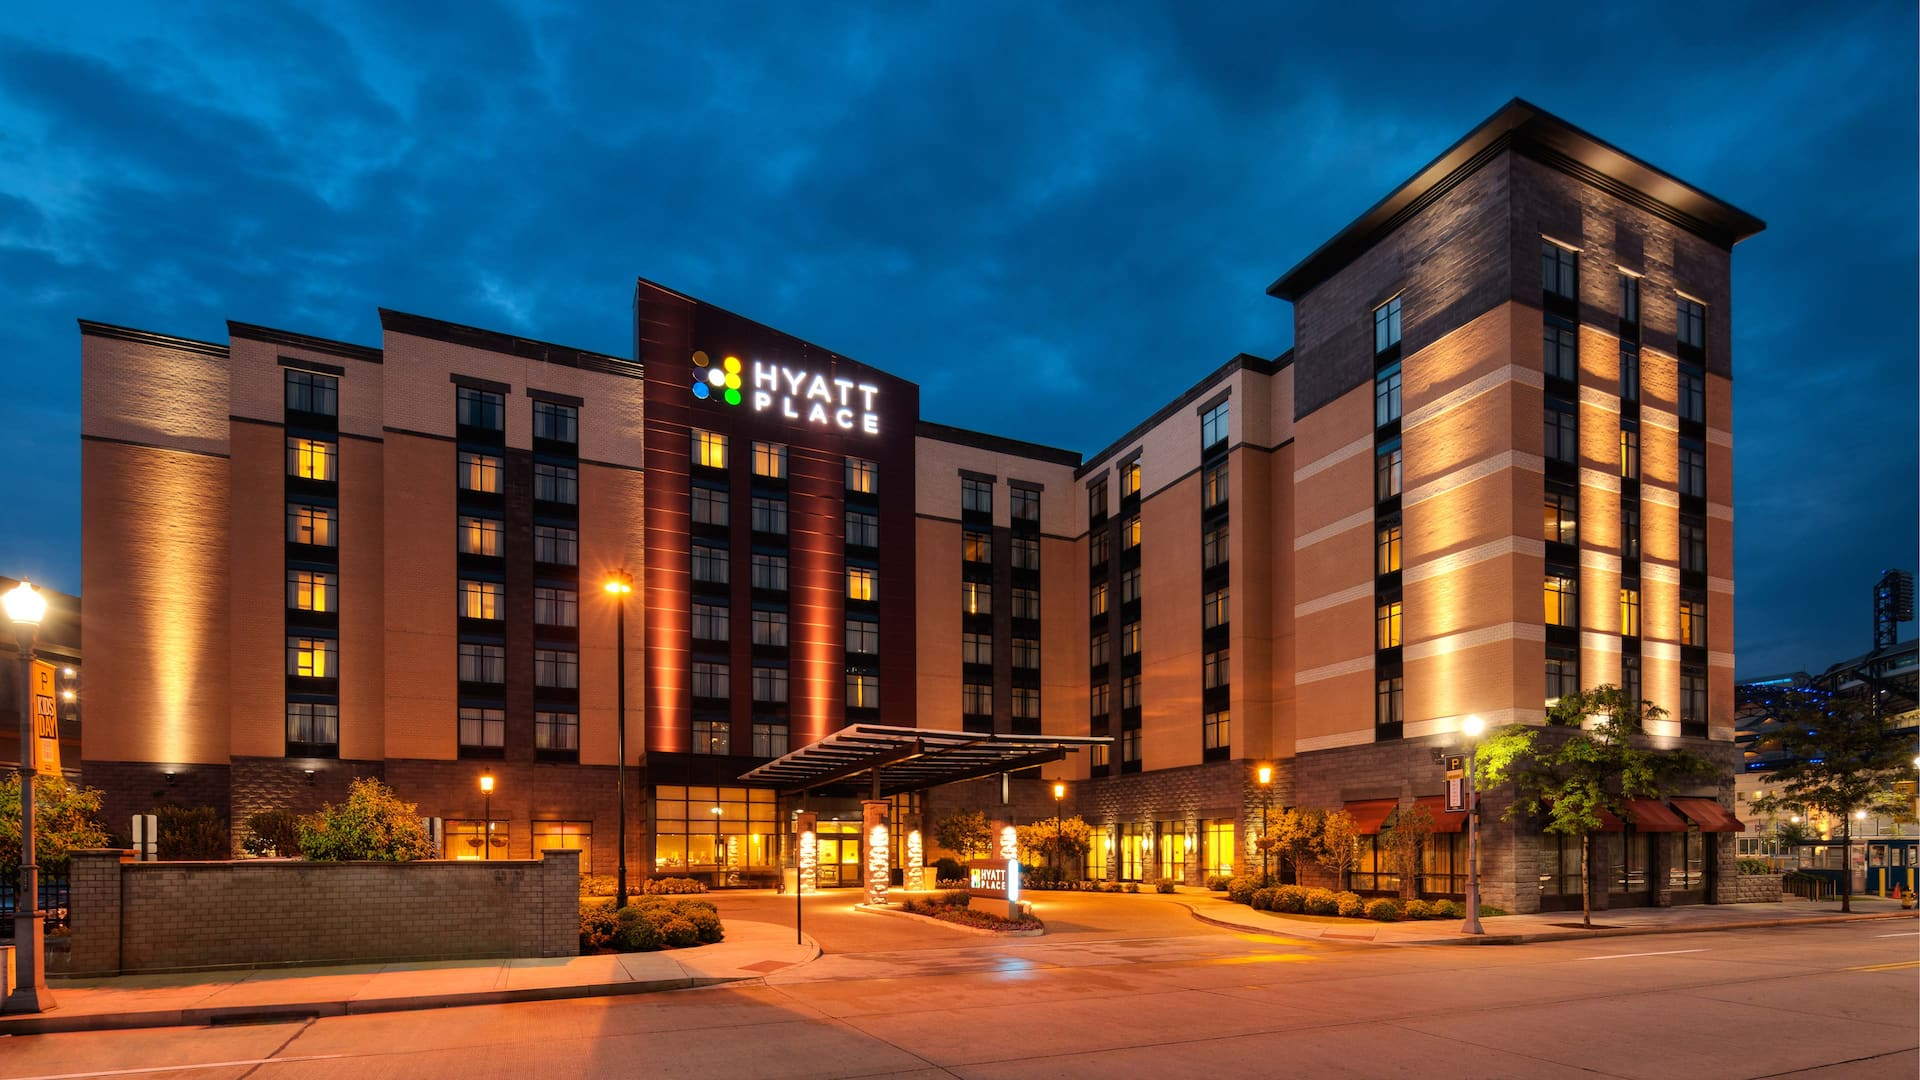 Hyatt Place Pittsburgh-North Shore Exterior